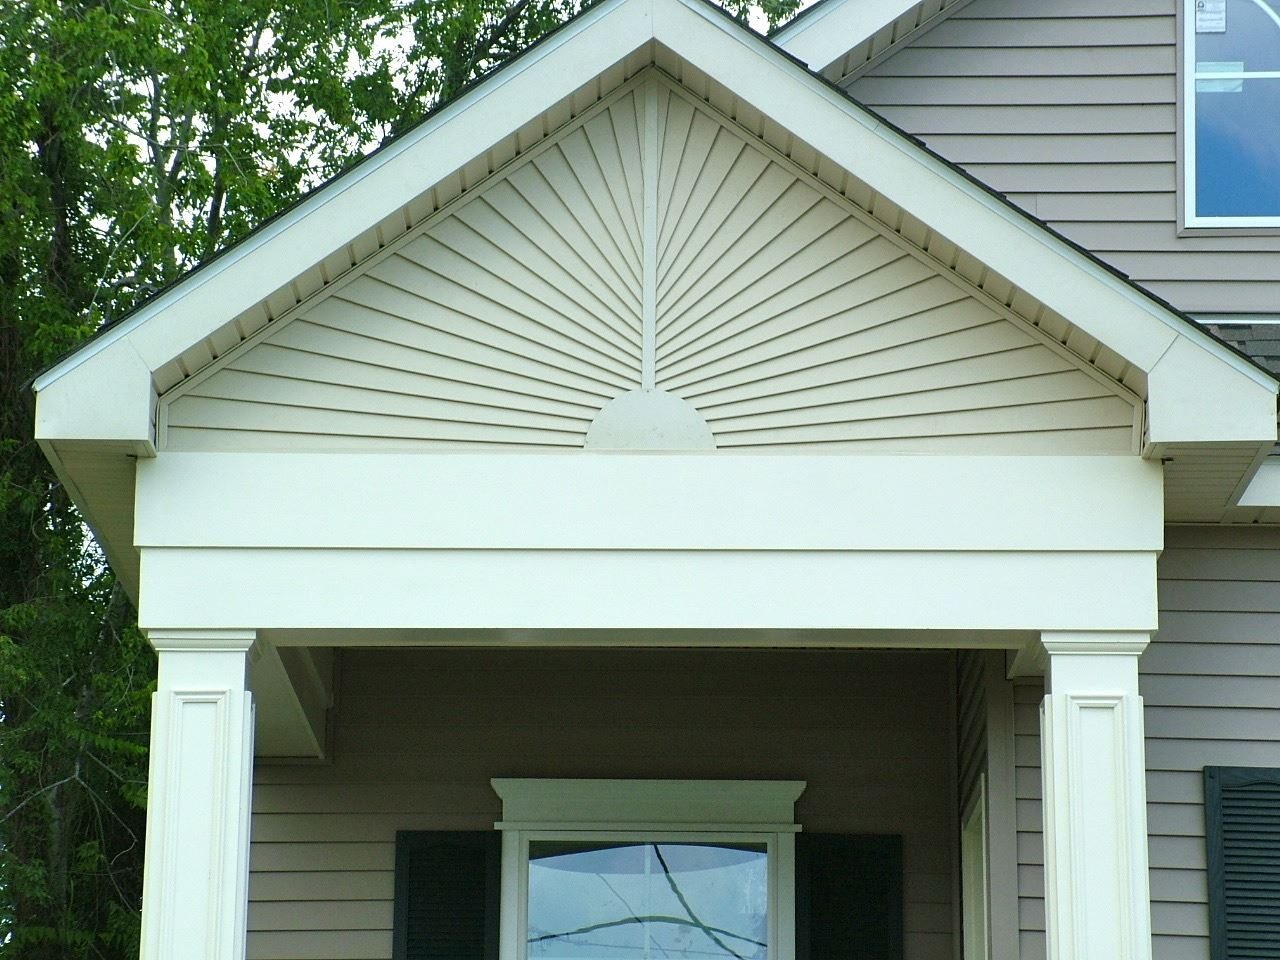 Exterior Home Improvement Contractors in New Orleans Louisiana | Siding Patios Gutters Windows ...